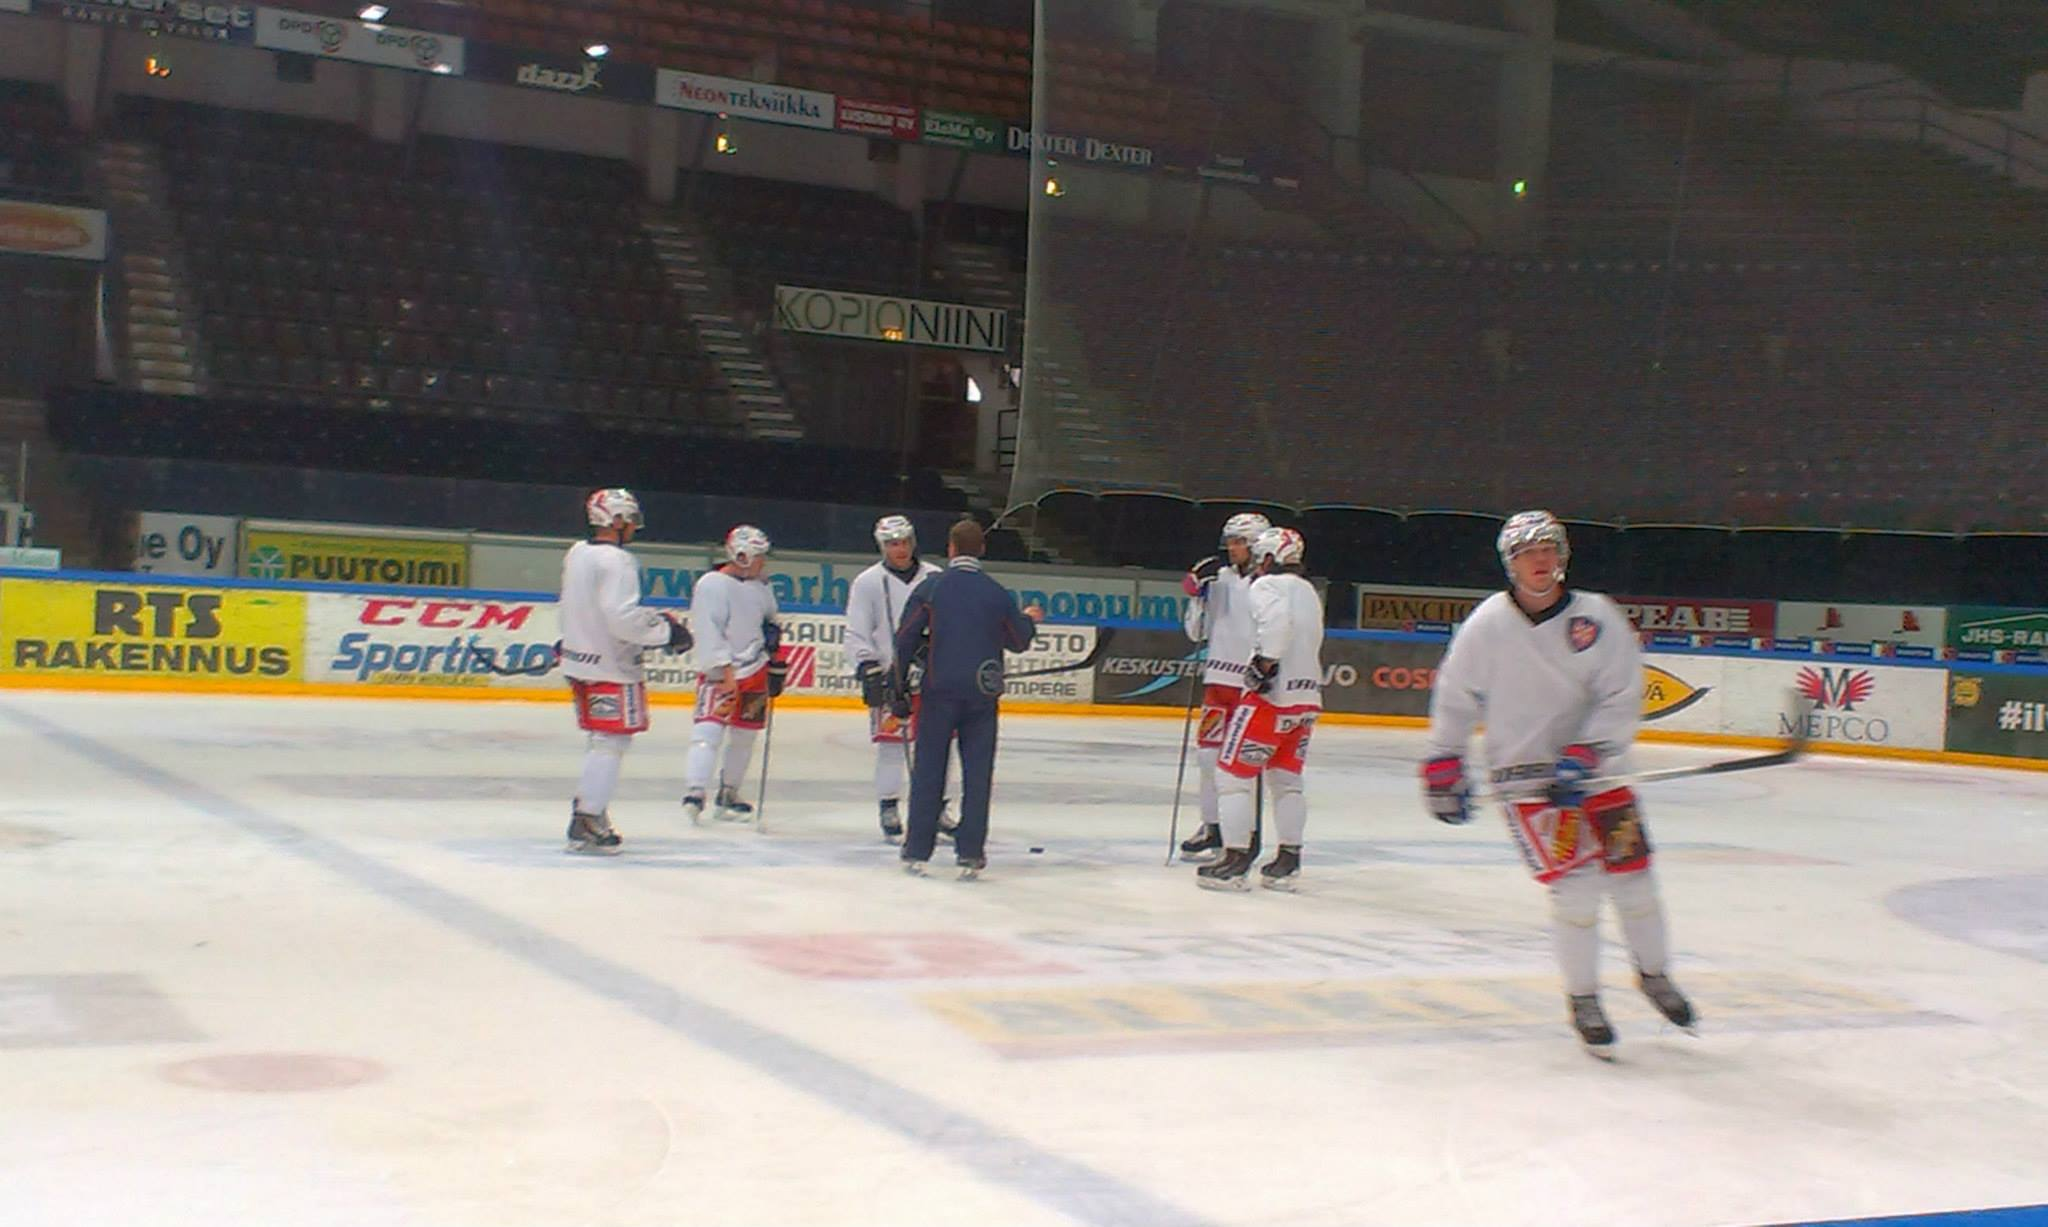 Nieminen (in the middle) listening to the coach on the training